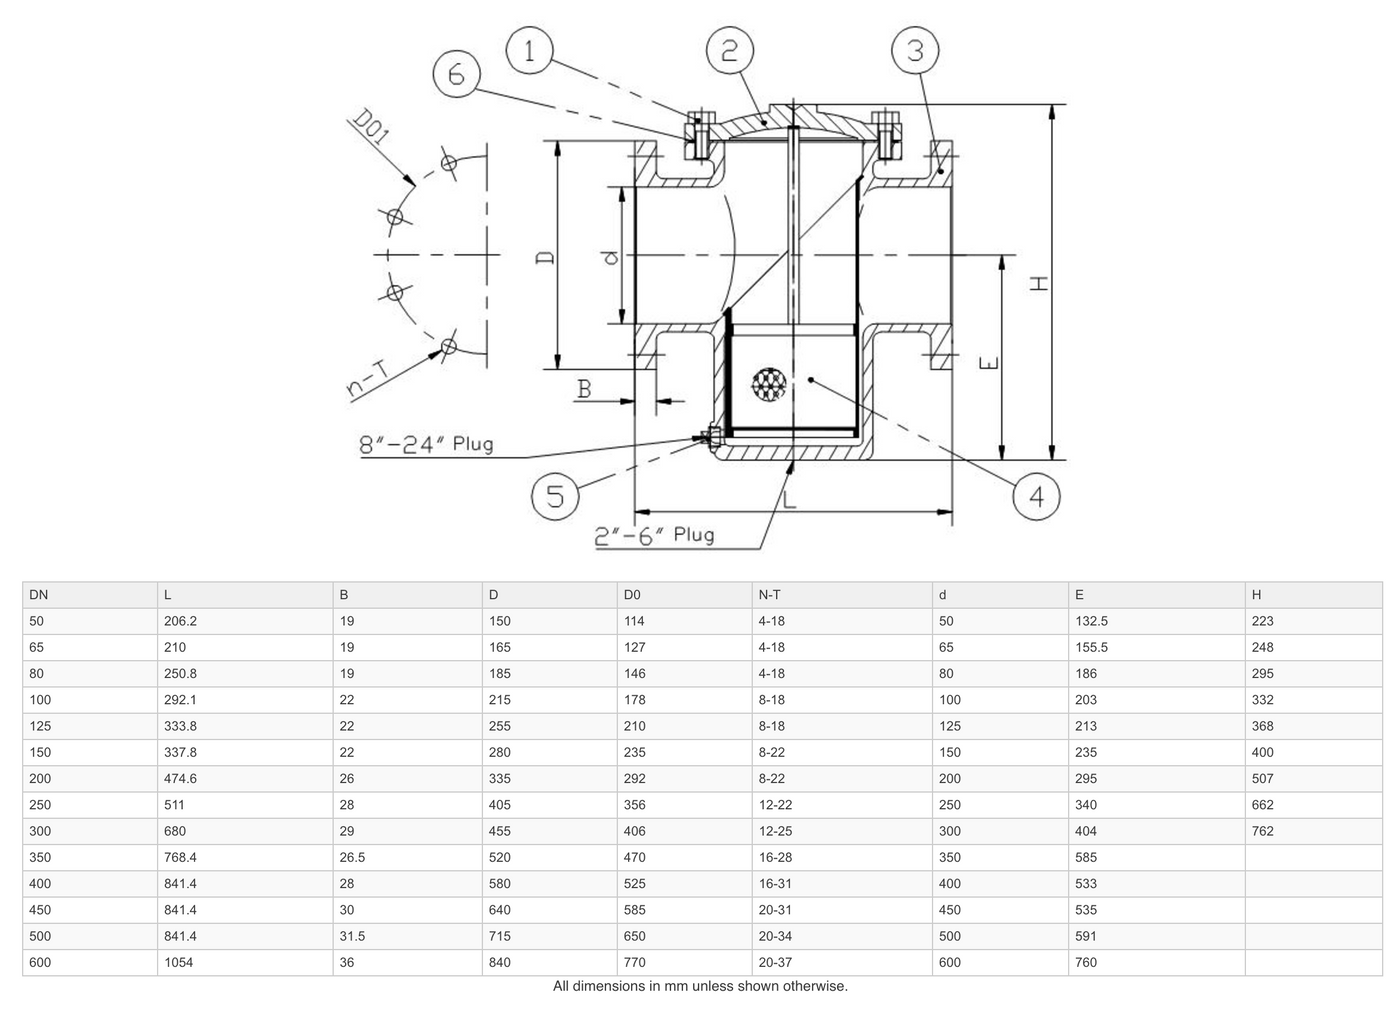 Generator Electrical Schematic And Wiring Diagram No 63800 Diagram